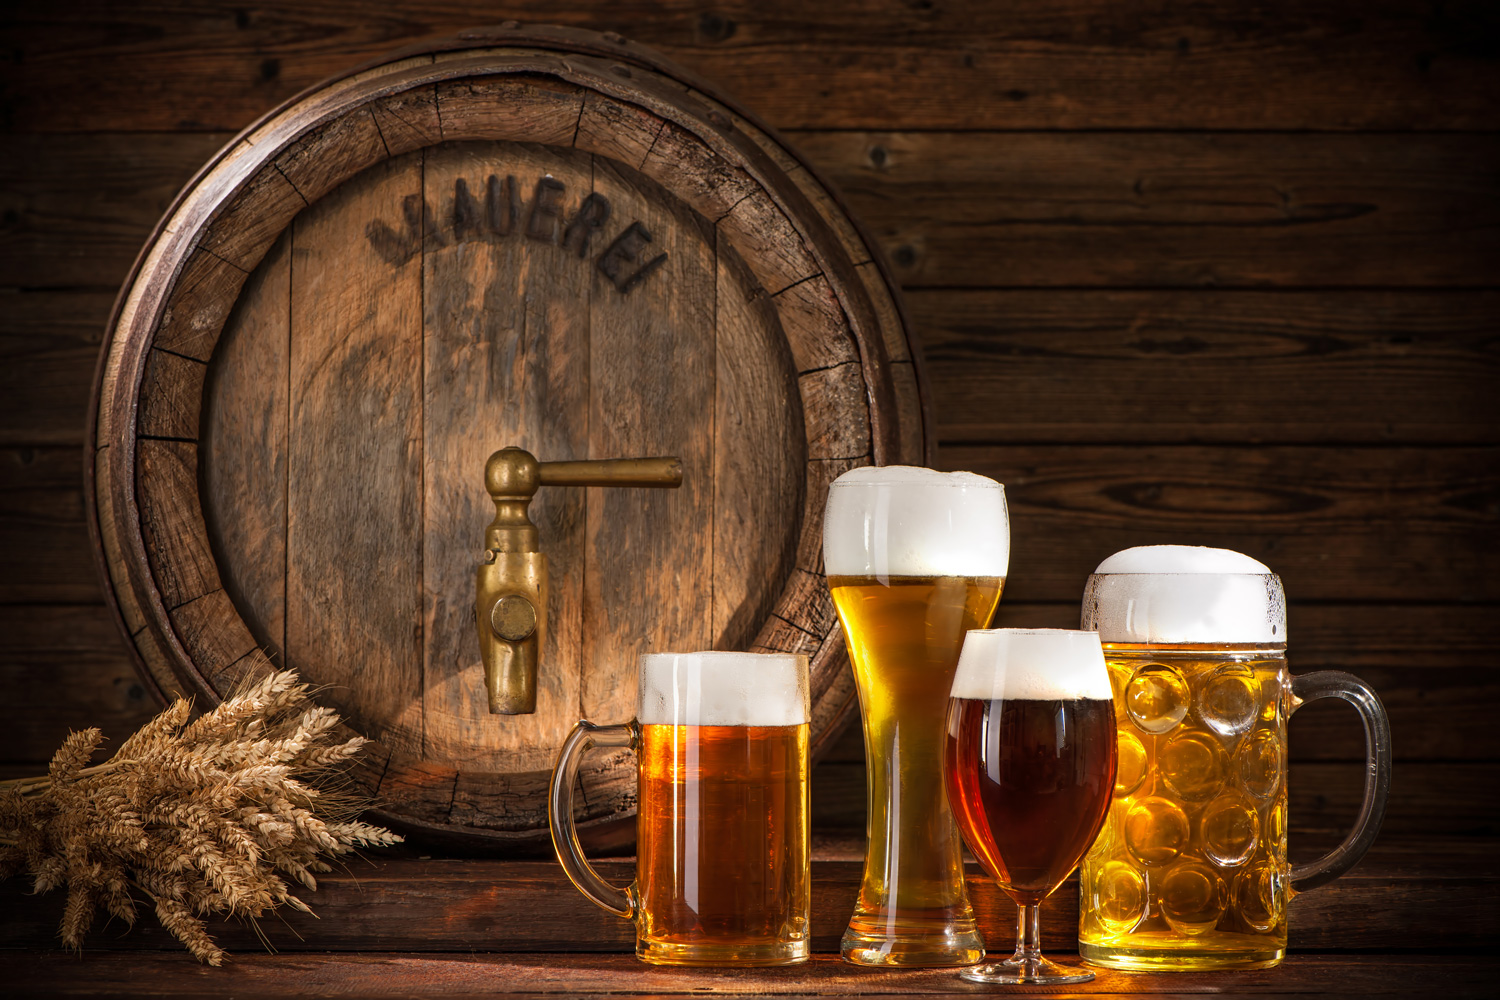 Central Europe's Top 10 Beer Destinations